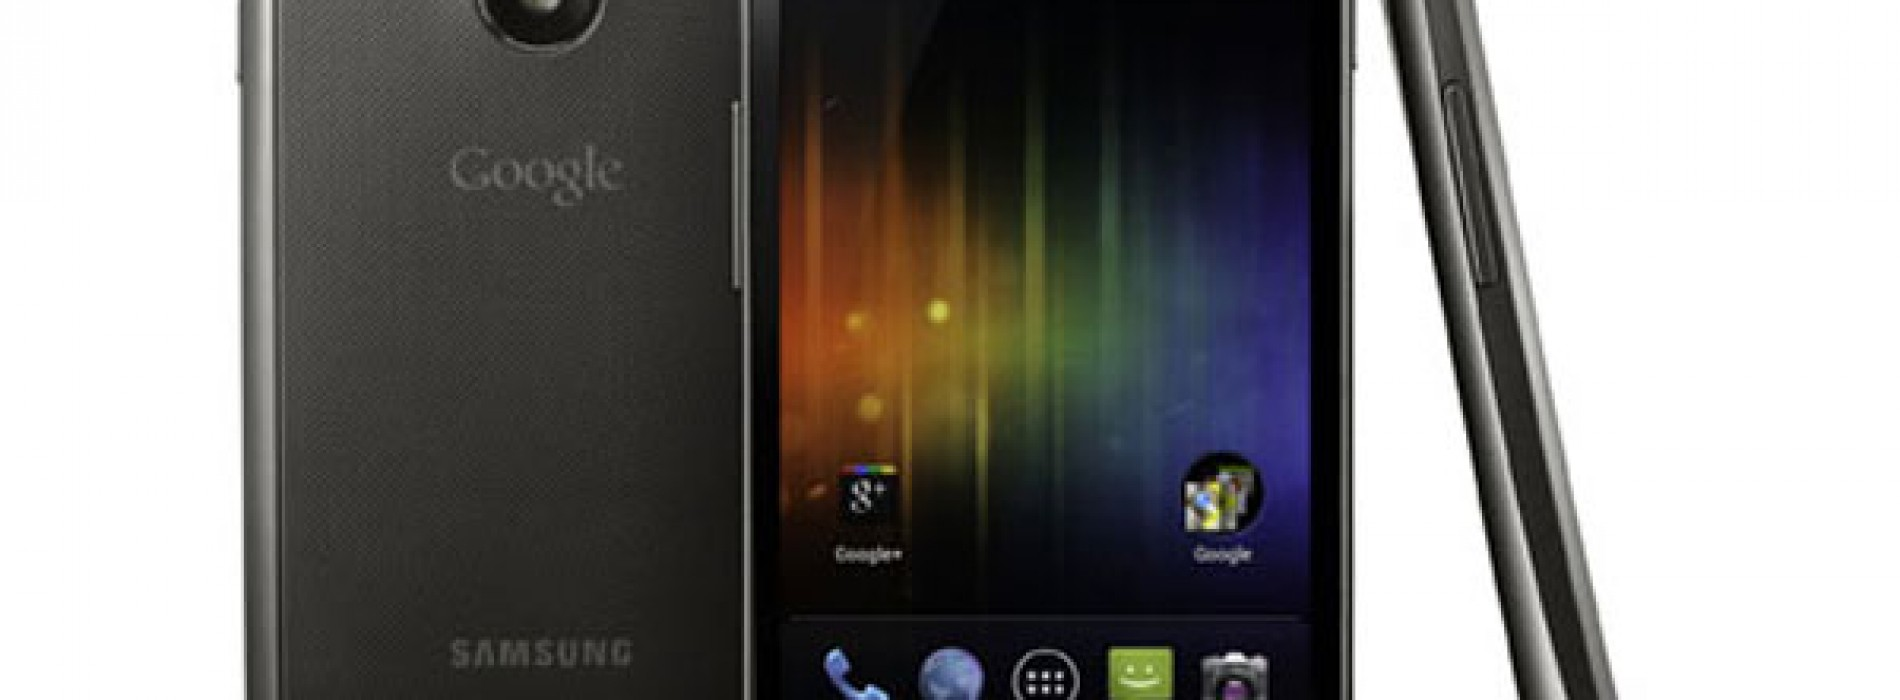 Samsung and Google working together on software fix to circumvent sales ban on Galaxy Nexus after ban lift denied